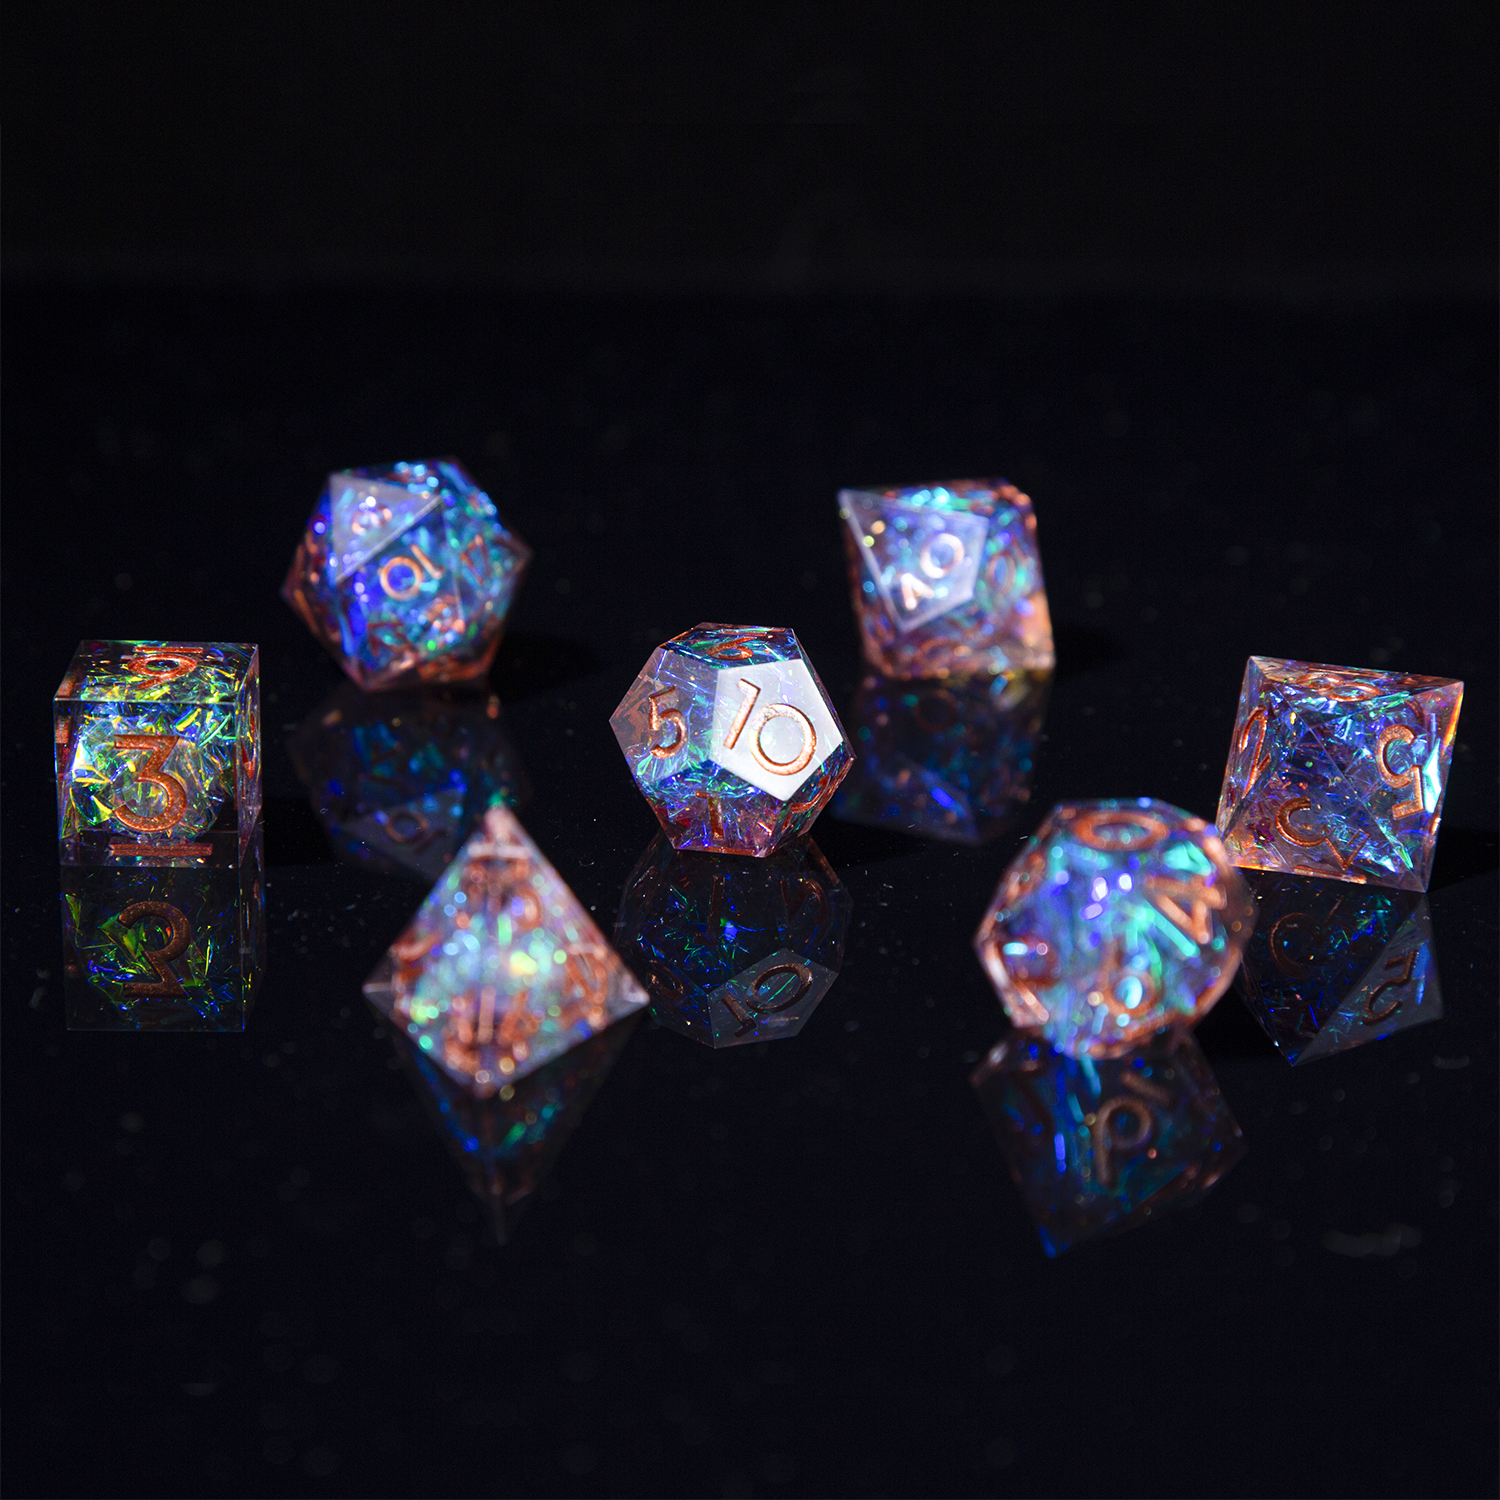 Dice Playing-Game Polyhedral-Mirror DND Role Sharp-Edges 7-Die with And Beautiful Inclusions